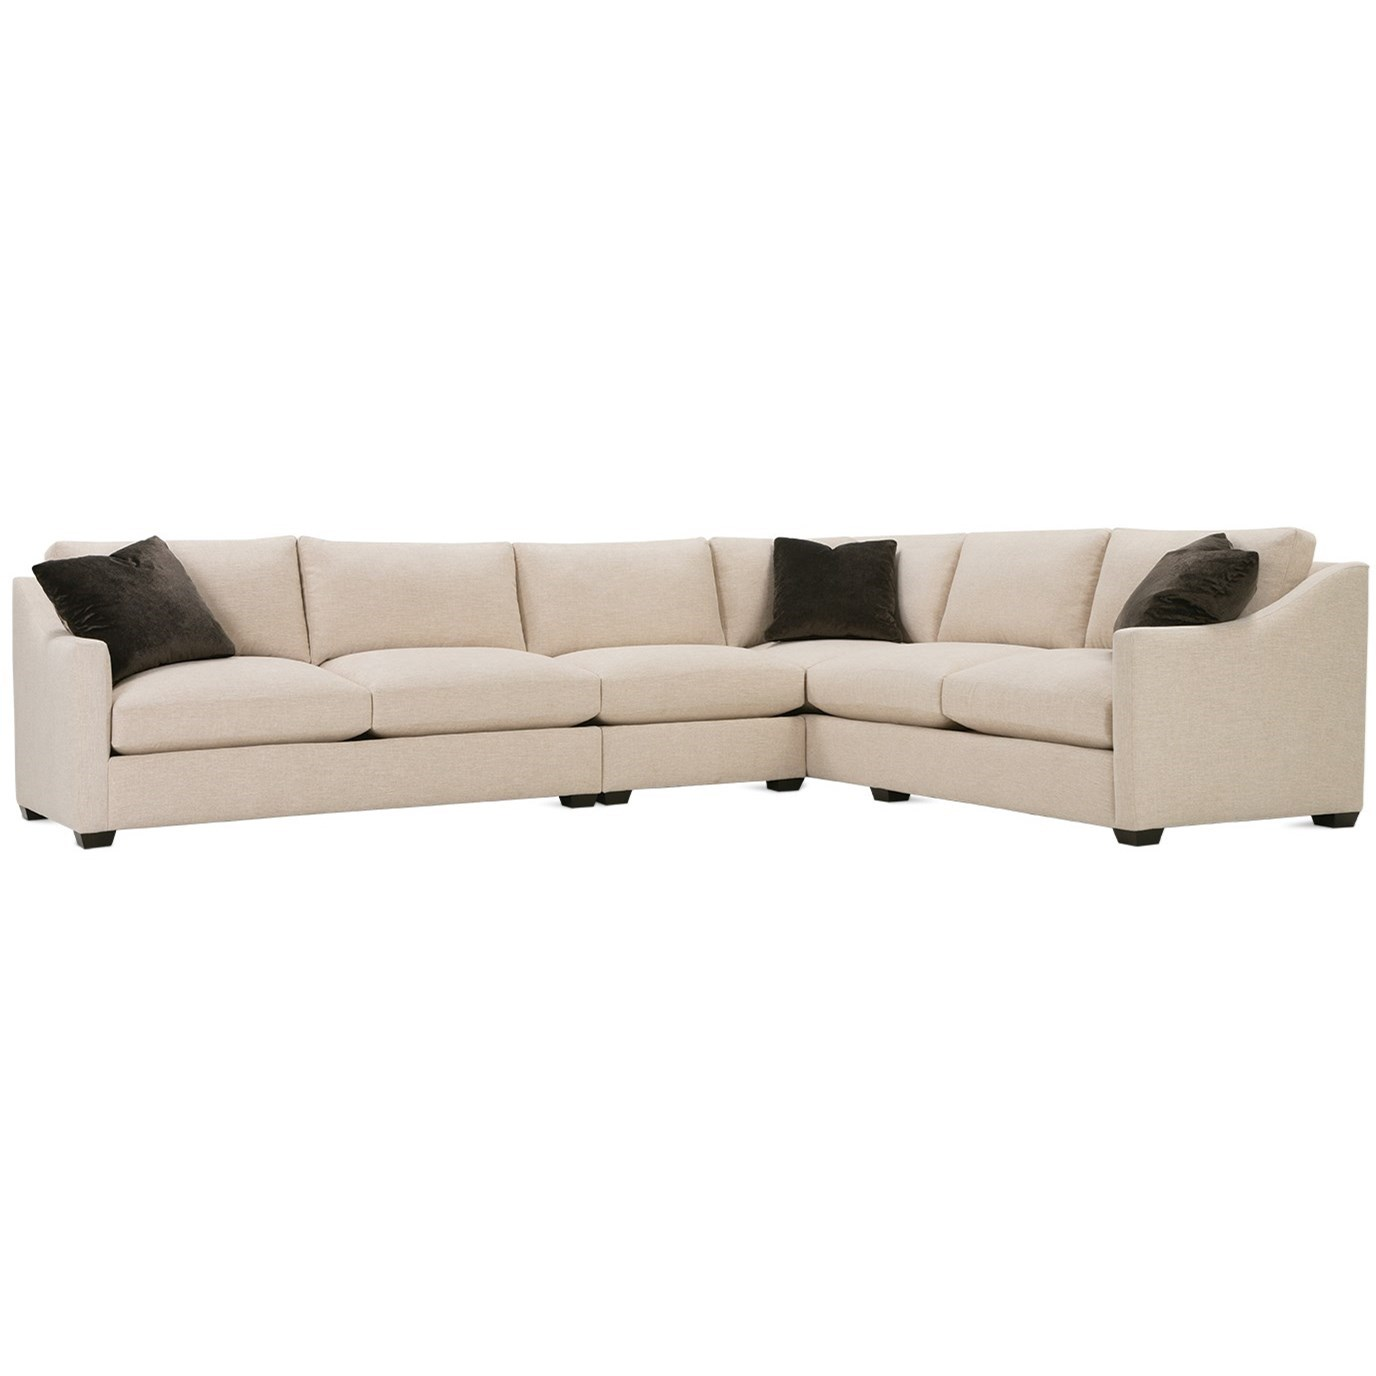 Bradford Sectional Sofa by Rowe at Baer's Furniture